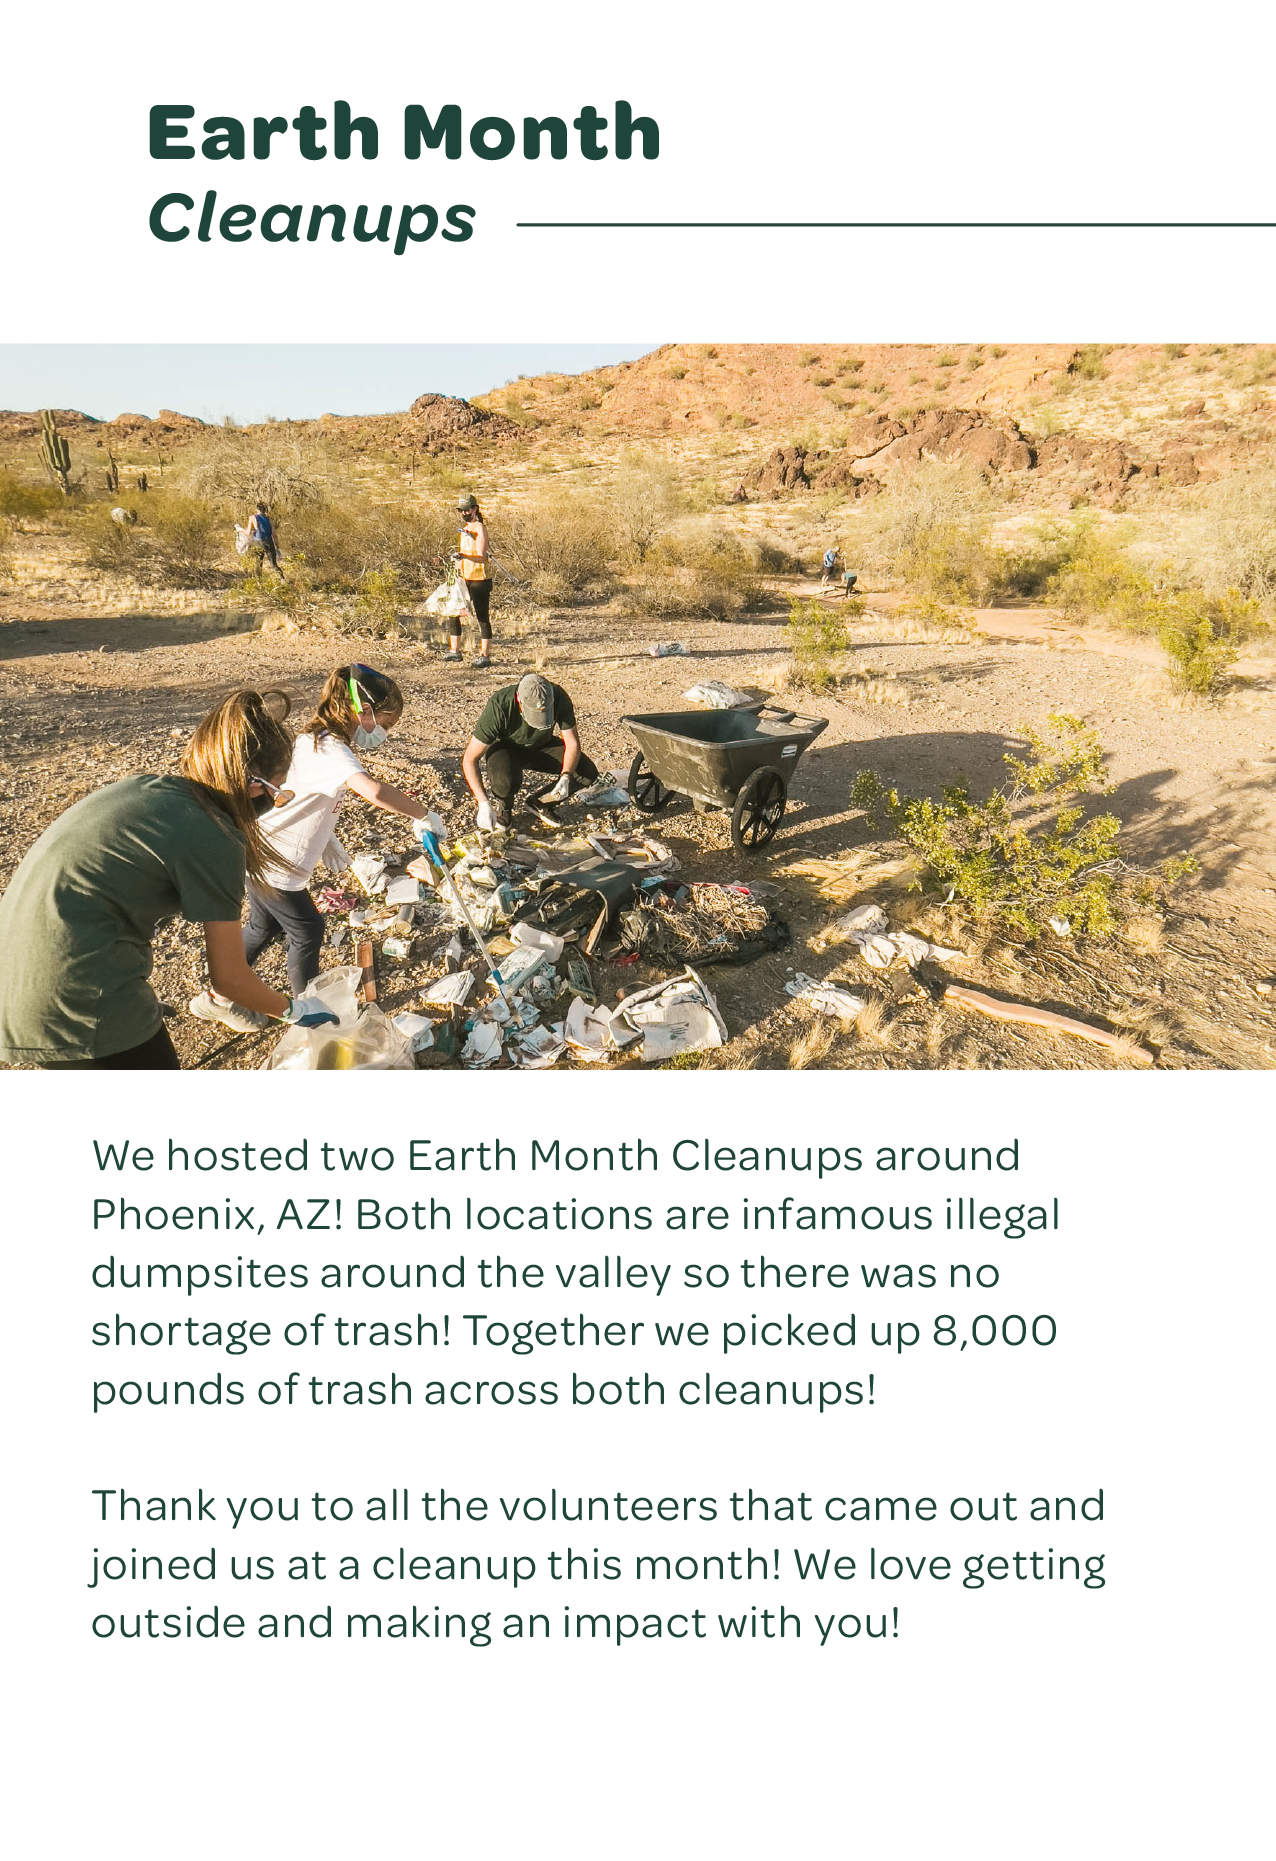 Earth Month Cleanups — We hosted two Earth Month Cleanups around Phoenix, AZ! Both locations are infamous illegal dumpsites around the valley so there was no shortage of trash! Together we picked up 8,000 pounds of trash across both cleanups! Thank you to all the volunteers that came out and joined us at a cleanup this month! We love getting outside and making an impact with you!